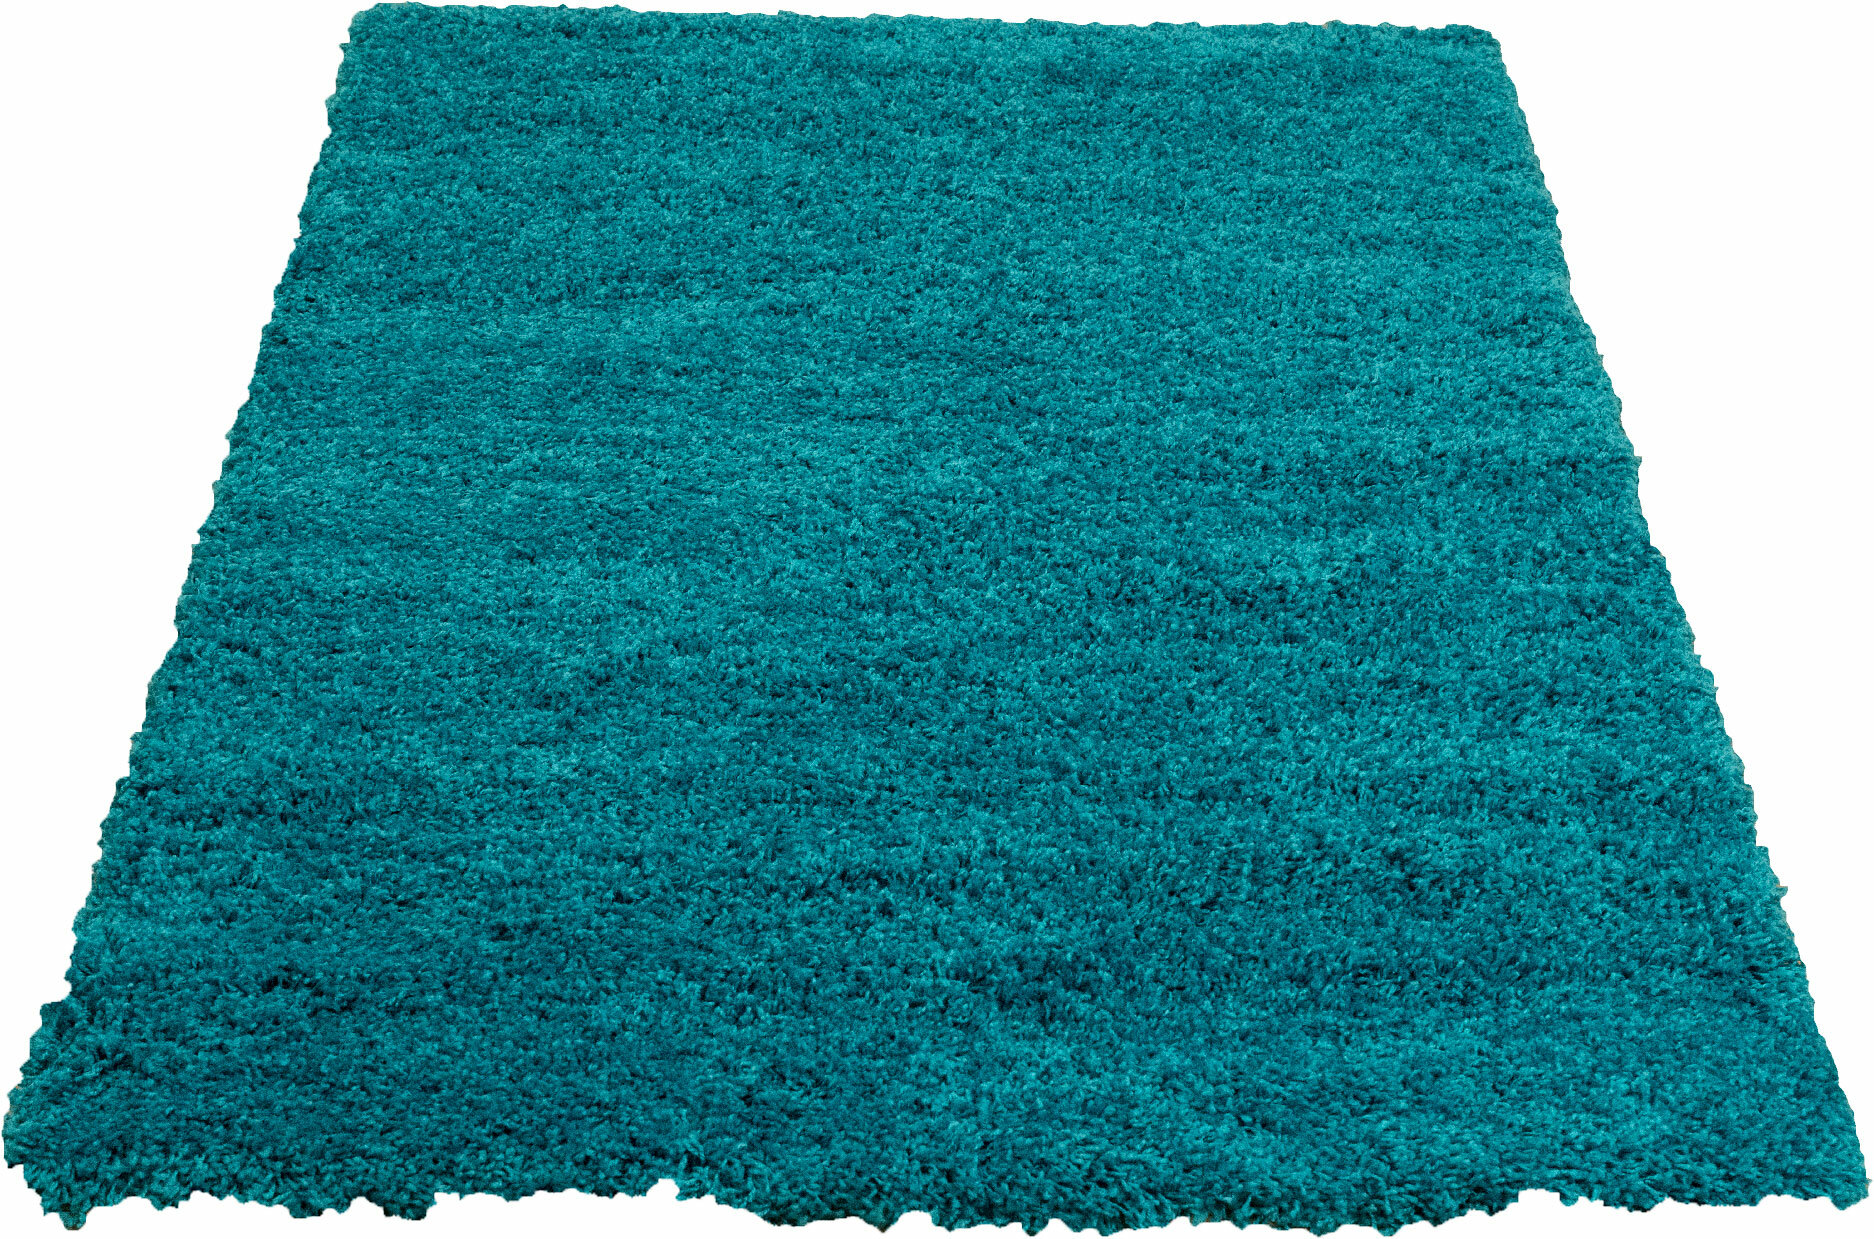 beige splendiferous rugs affordable green navy plush low toft brown black floor rug red most shaggy shag grey cream teal blue orange purple fuzzy contemporary and area